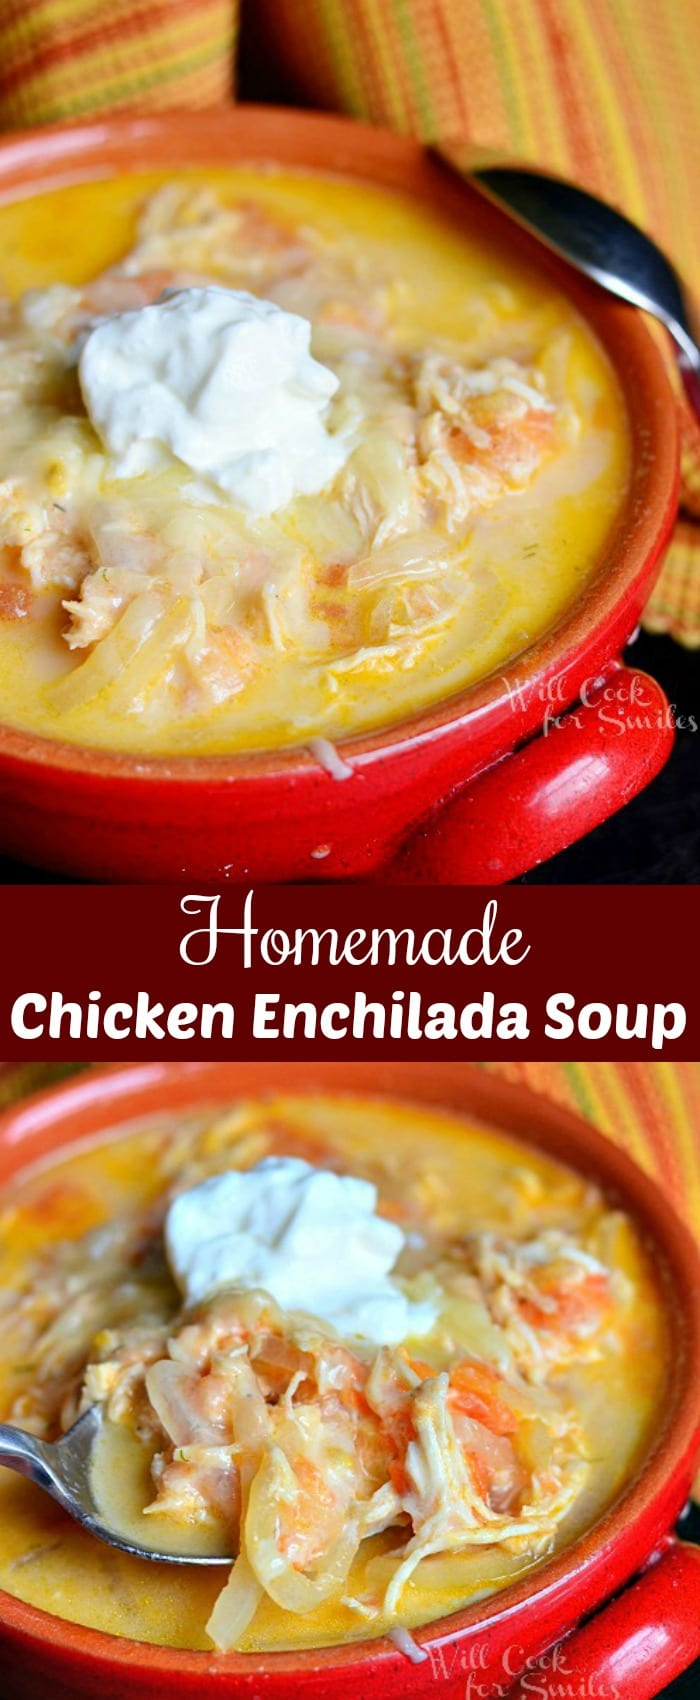 Homemade Creamy Chicken Enchilada Soup Recipe is a simple and comforting soup that captures the best chicken enchilada flavors. #soup #chickensoup #chickenenchilada #creamysoup